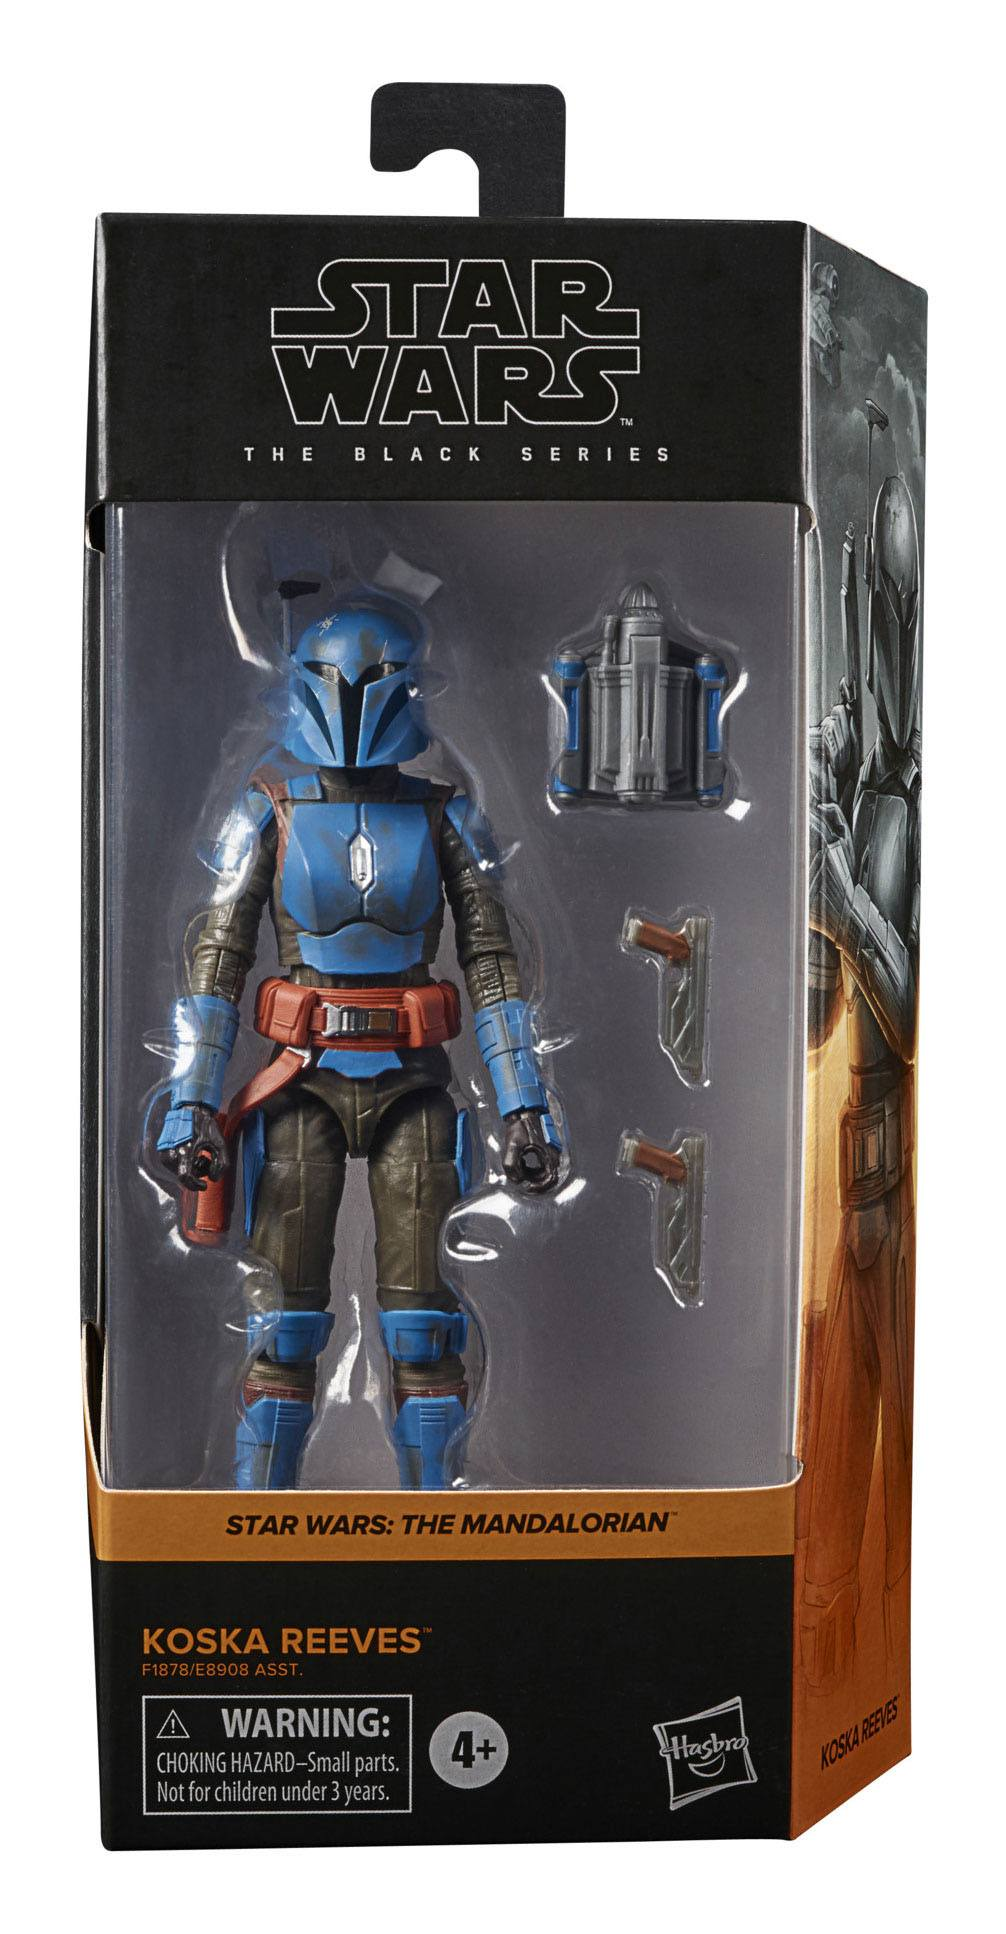 Star Wars Black Series Actionfiguren 15 cm 2021 Wave 3 Sortiment (8) E89085L04 5010993749287